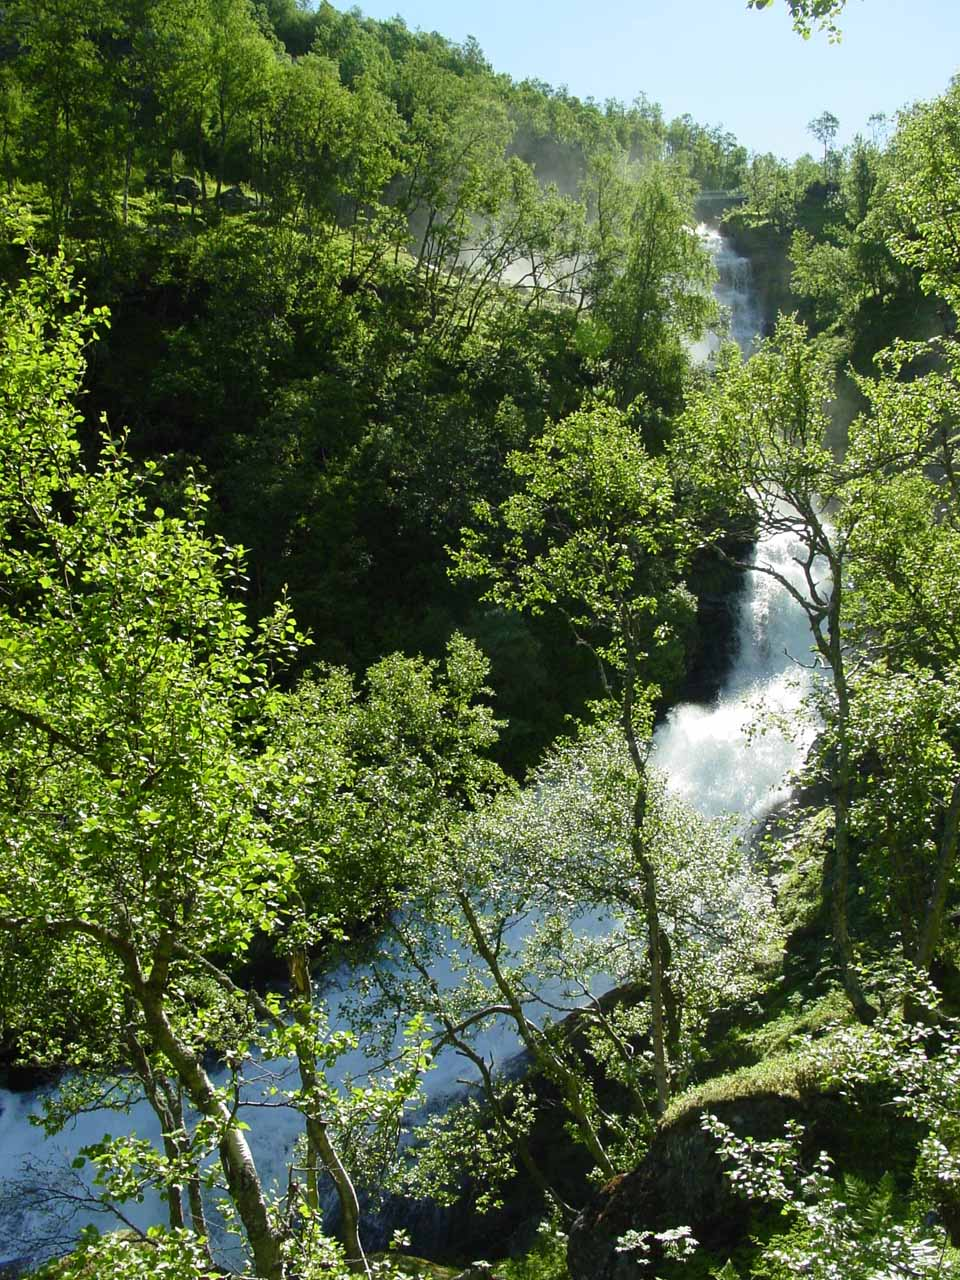 Another view of Kvanndalsfossen, but this time with lots of foliage obstructing line of sight